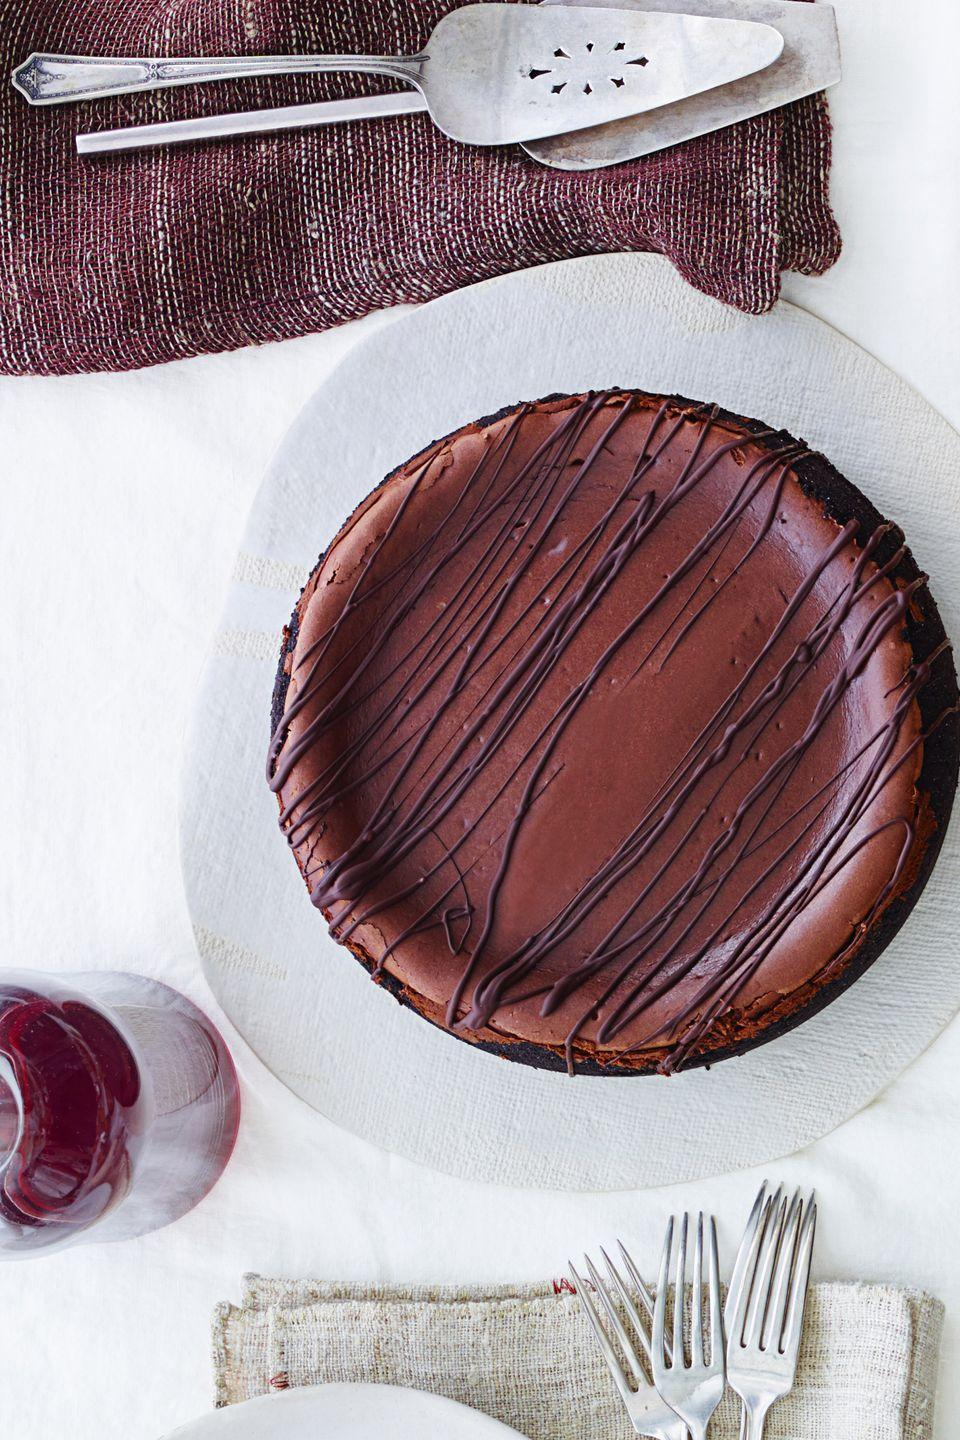 "<p>This indulgent cheesecake recipe is perfect for those who crave a little coffee with their sweet treats.</p><p><a href=""https://www.goodhousekeeping.com/food-recipes/a15895/midnight-mocha-cheesecake-recipe-ghk1114/"" rel=""nofollow noopener"" target=""_blank"" data-ylk=""slk:Get the recipe for Midnight Mocha Cheesecake »"" class=""link rapid-noclick-resp""><em>Get the recipe for Midnight Mocha Cheesecake »</em></a></p>"